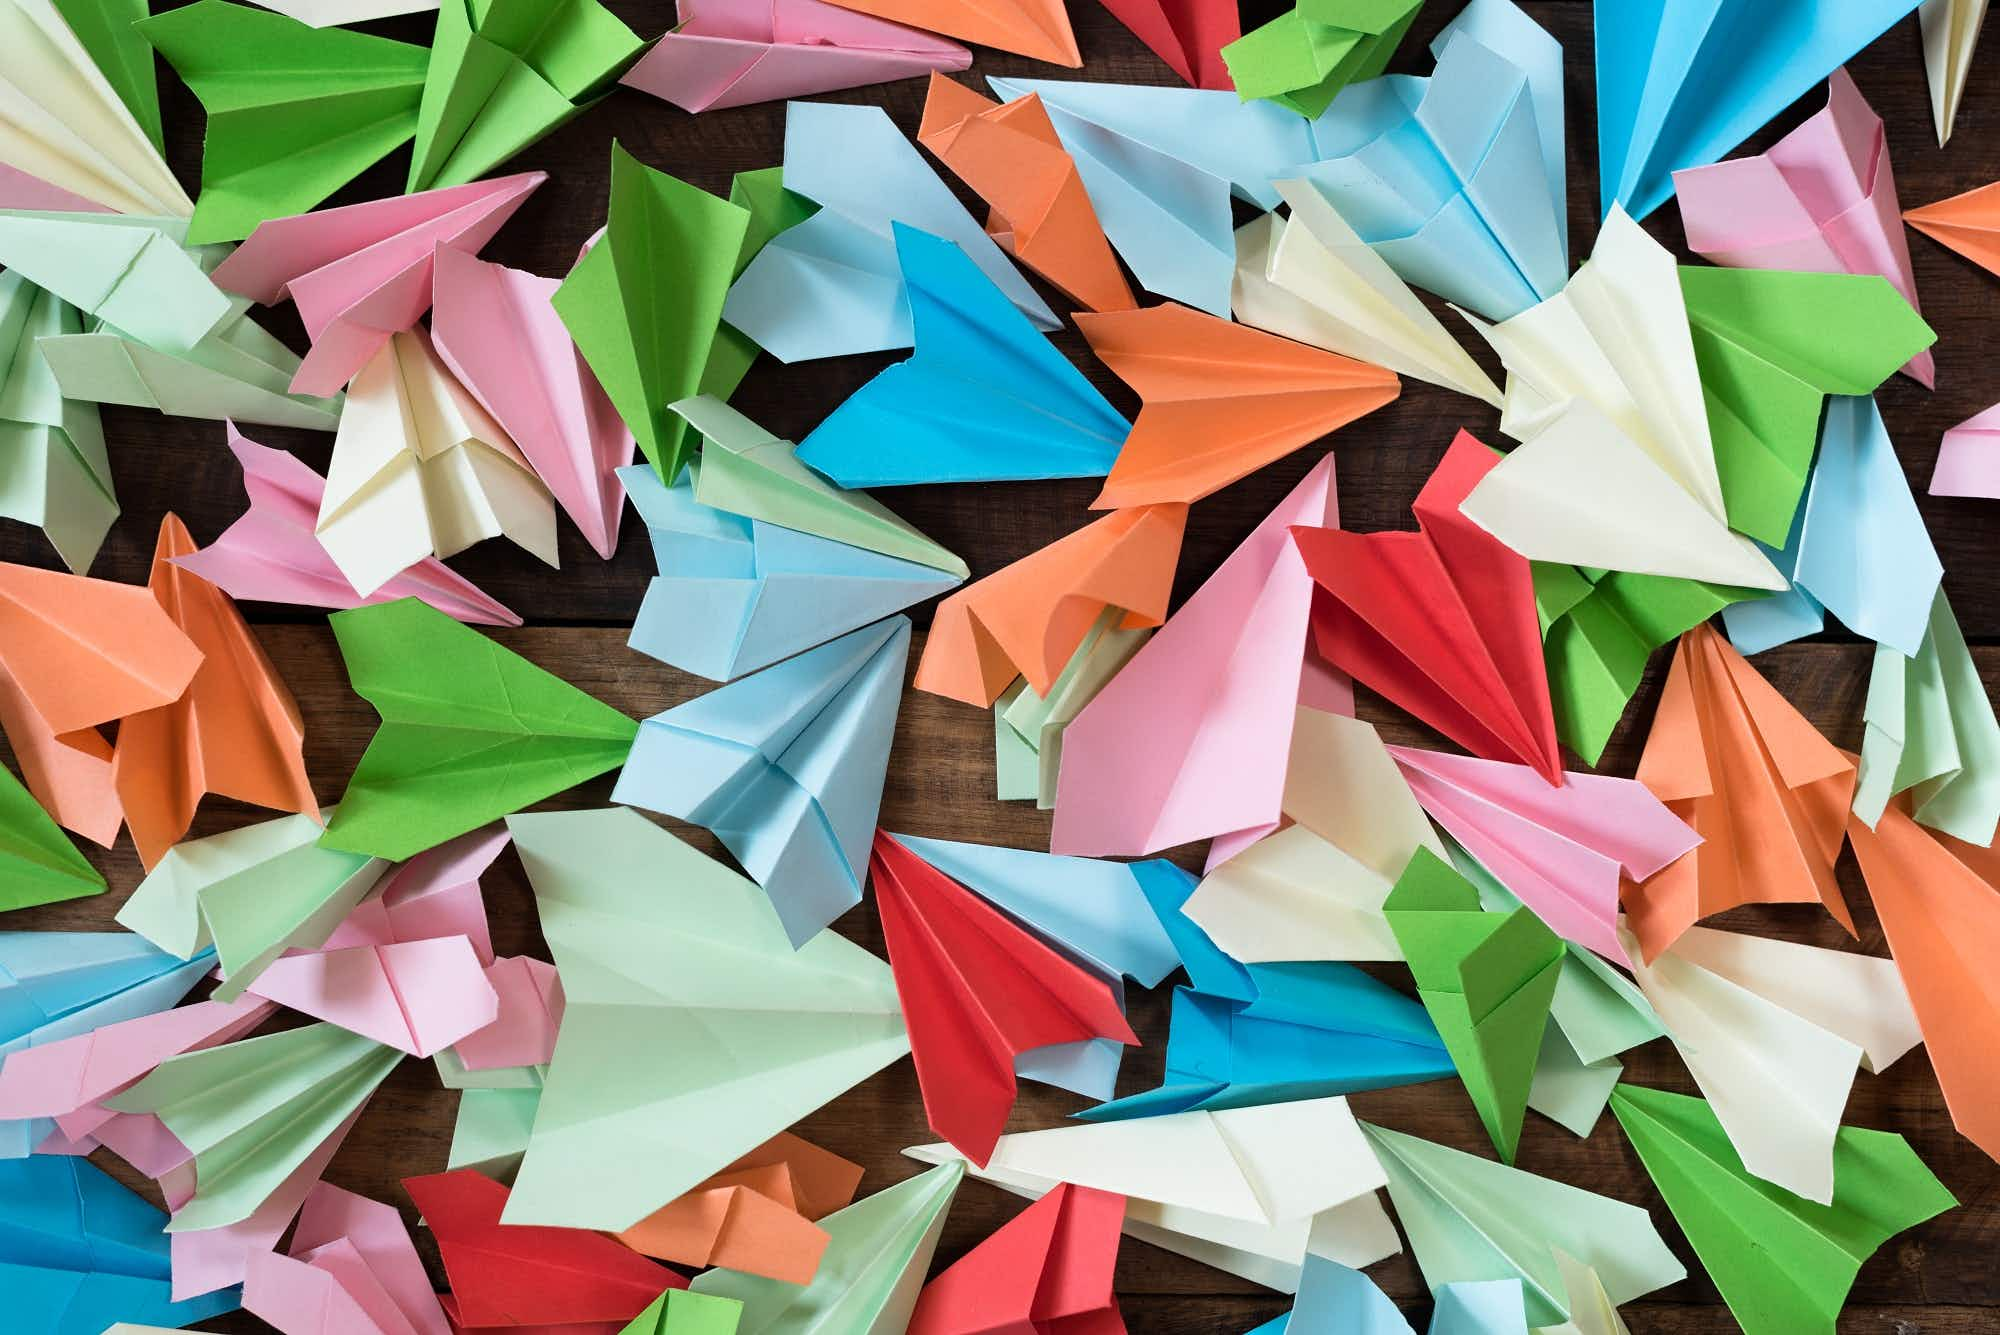 Rainy day adventures: learn how to make a paper plane